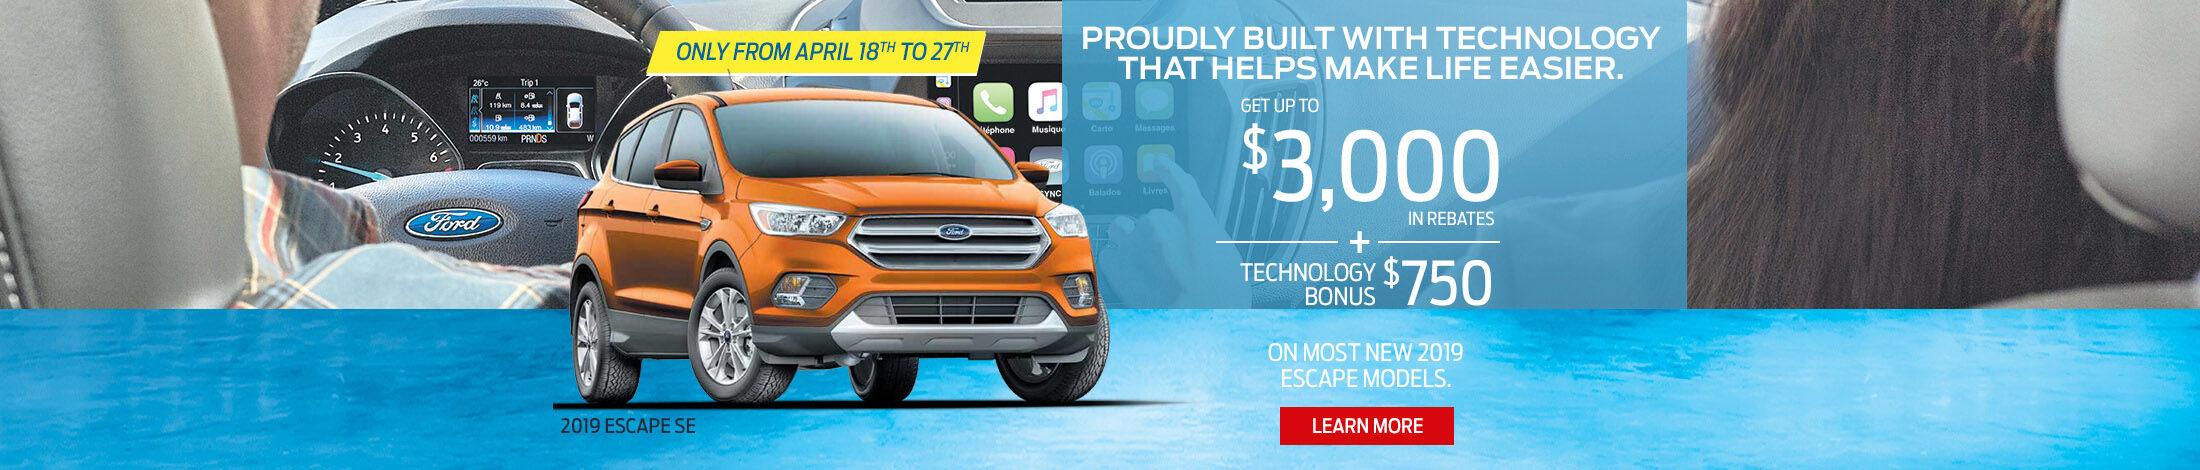 Vitrine Vito Chaise Ford Dealership In Cowansville Deragon Ford